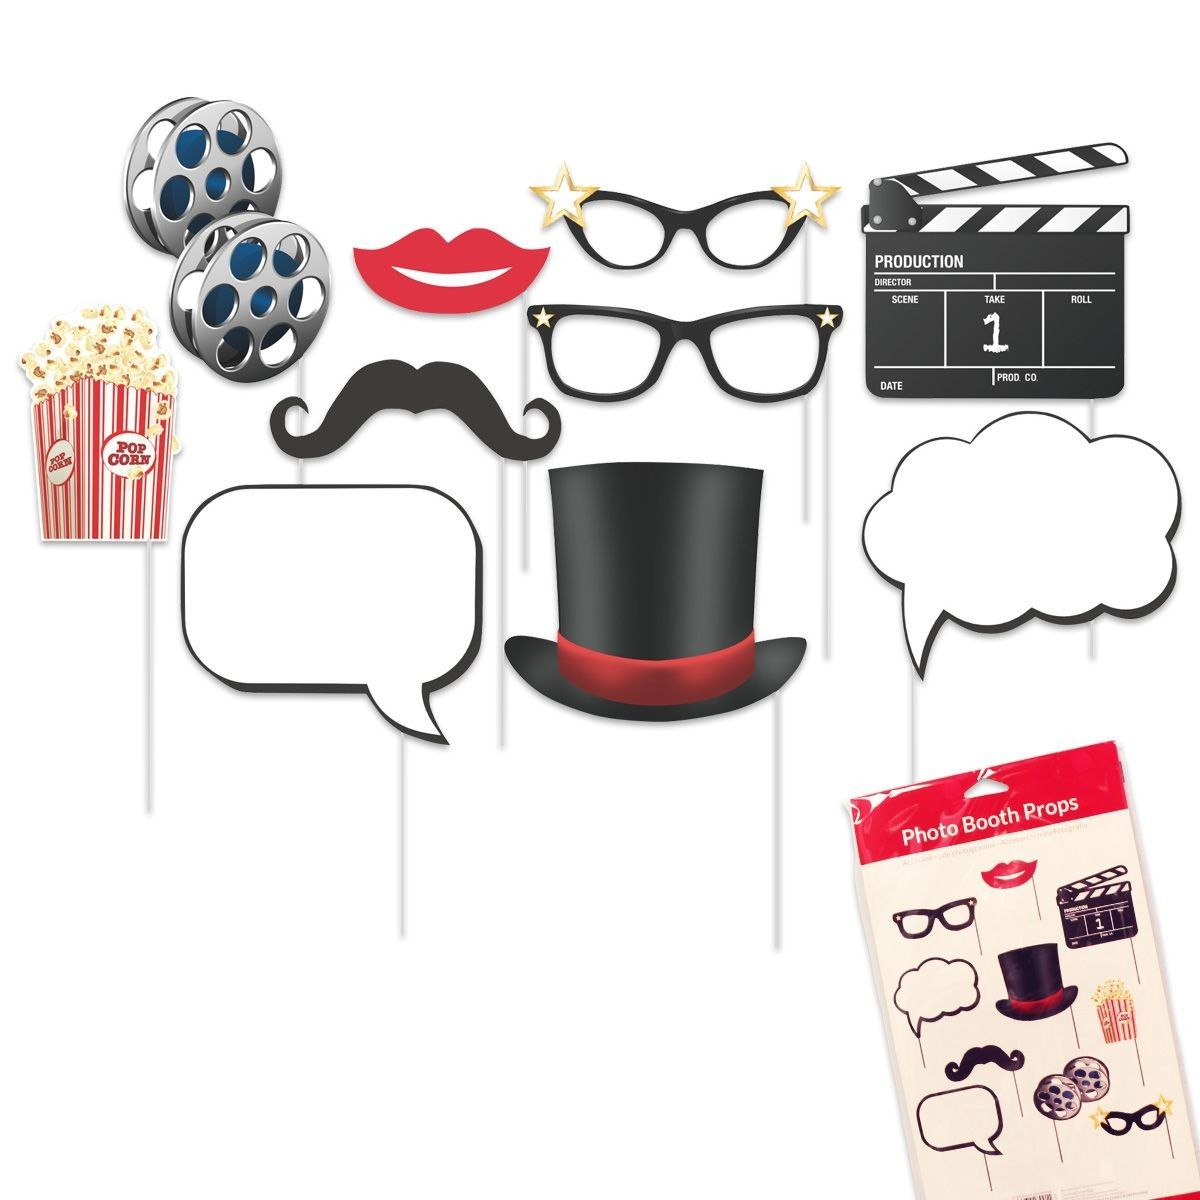 Shop Windy City Novelties for Hollywood Photo Booth Kit